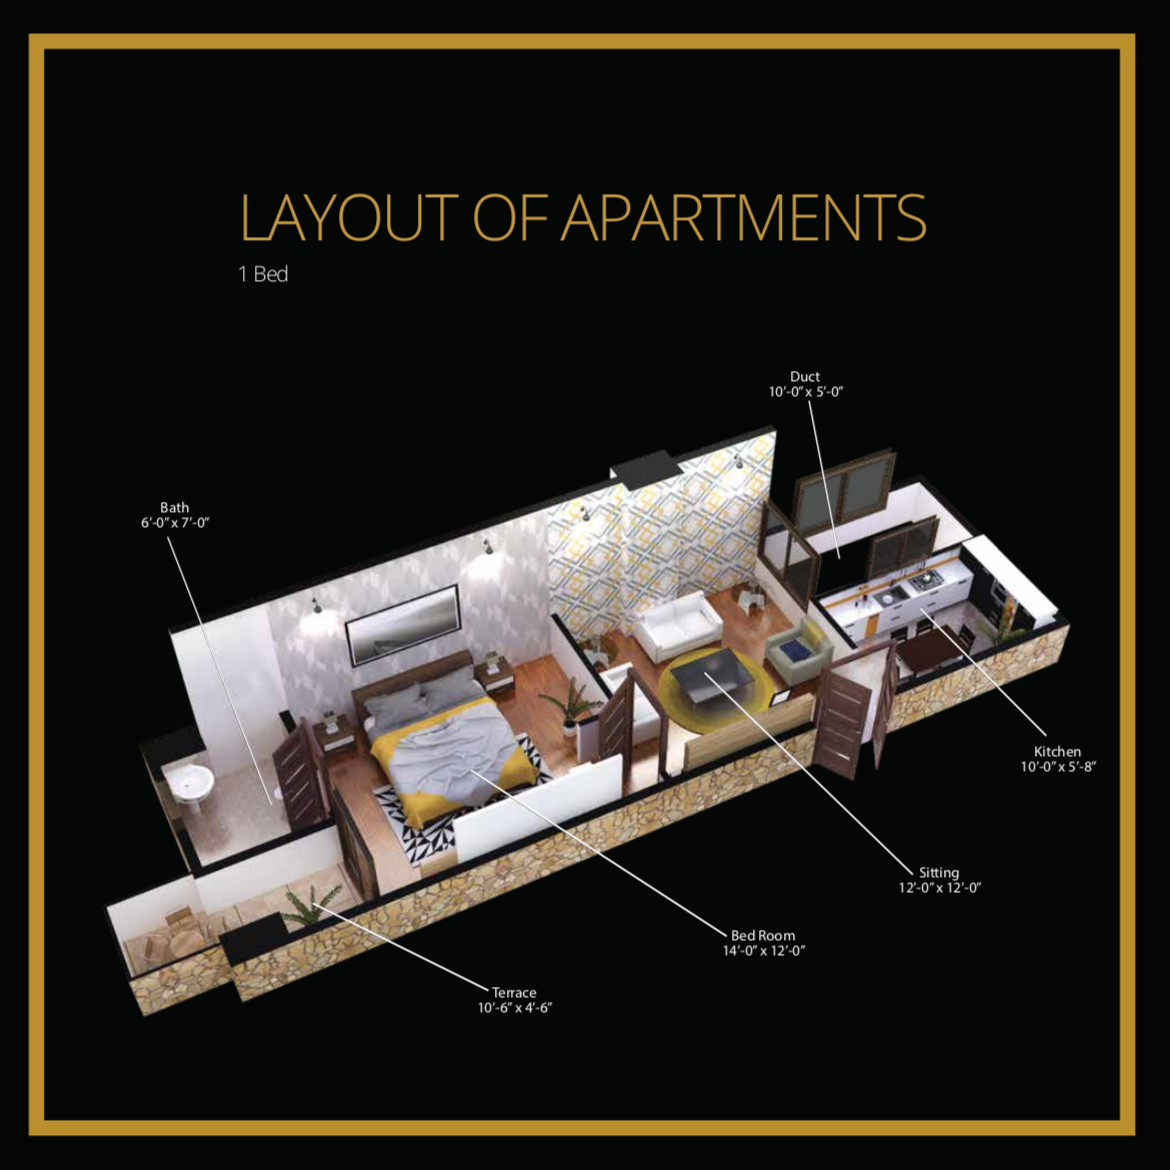 1 Bed Layout